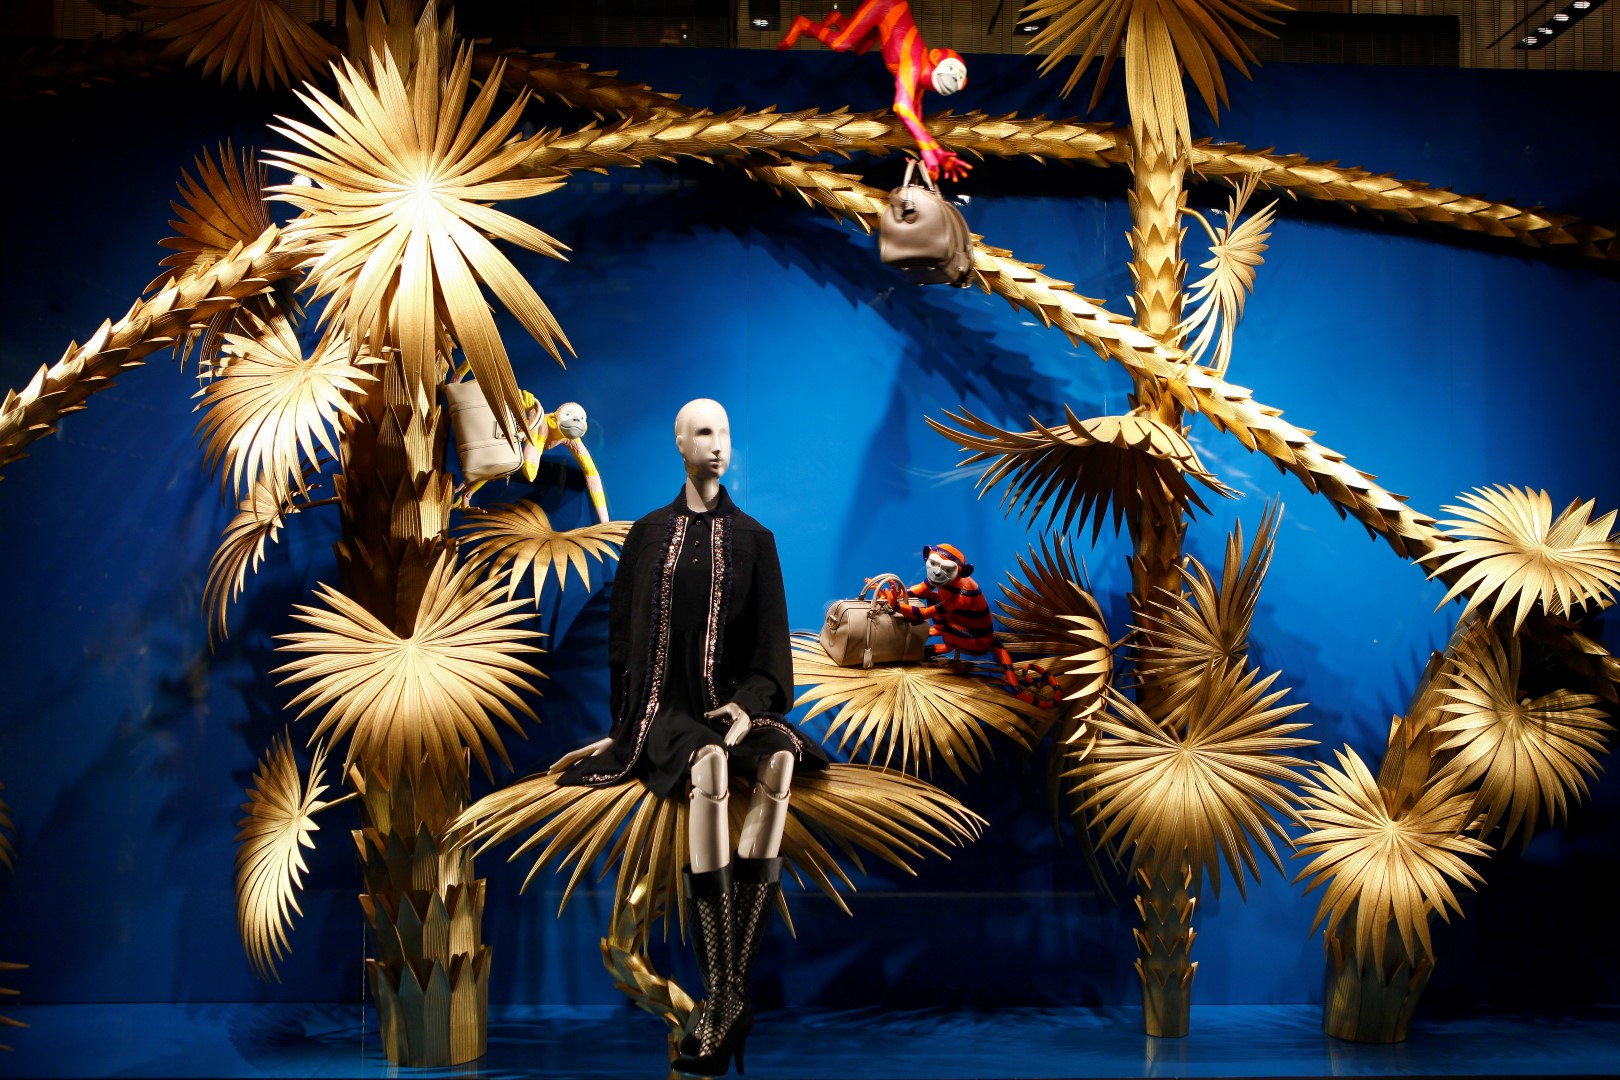 The blue background and the idea of palm trees could be for a summer window display but the golden leaves that are looking like fire-crackers, and the vestment of the mannequin could indicate a New Year's Eve time for Louis Vuitton.